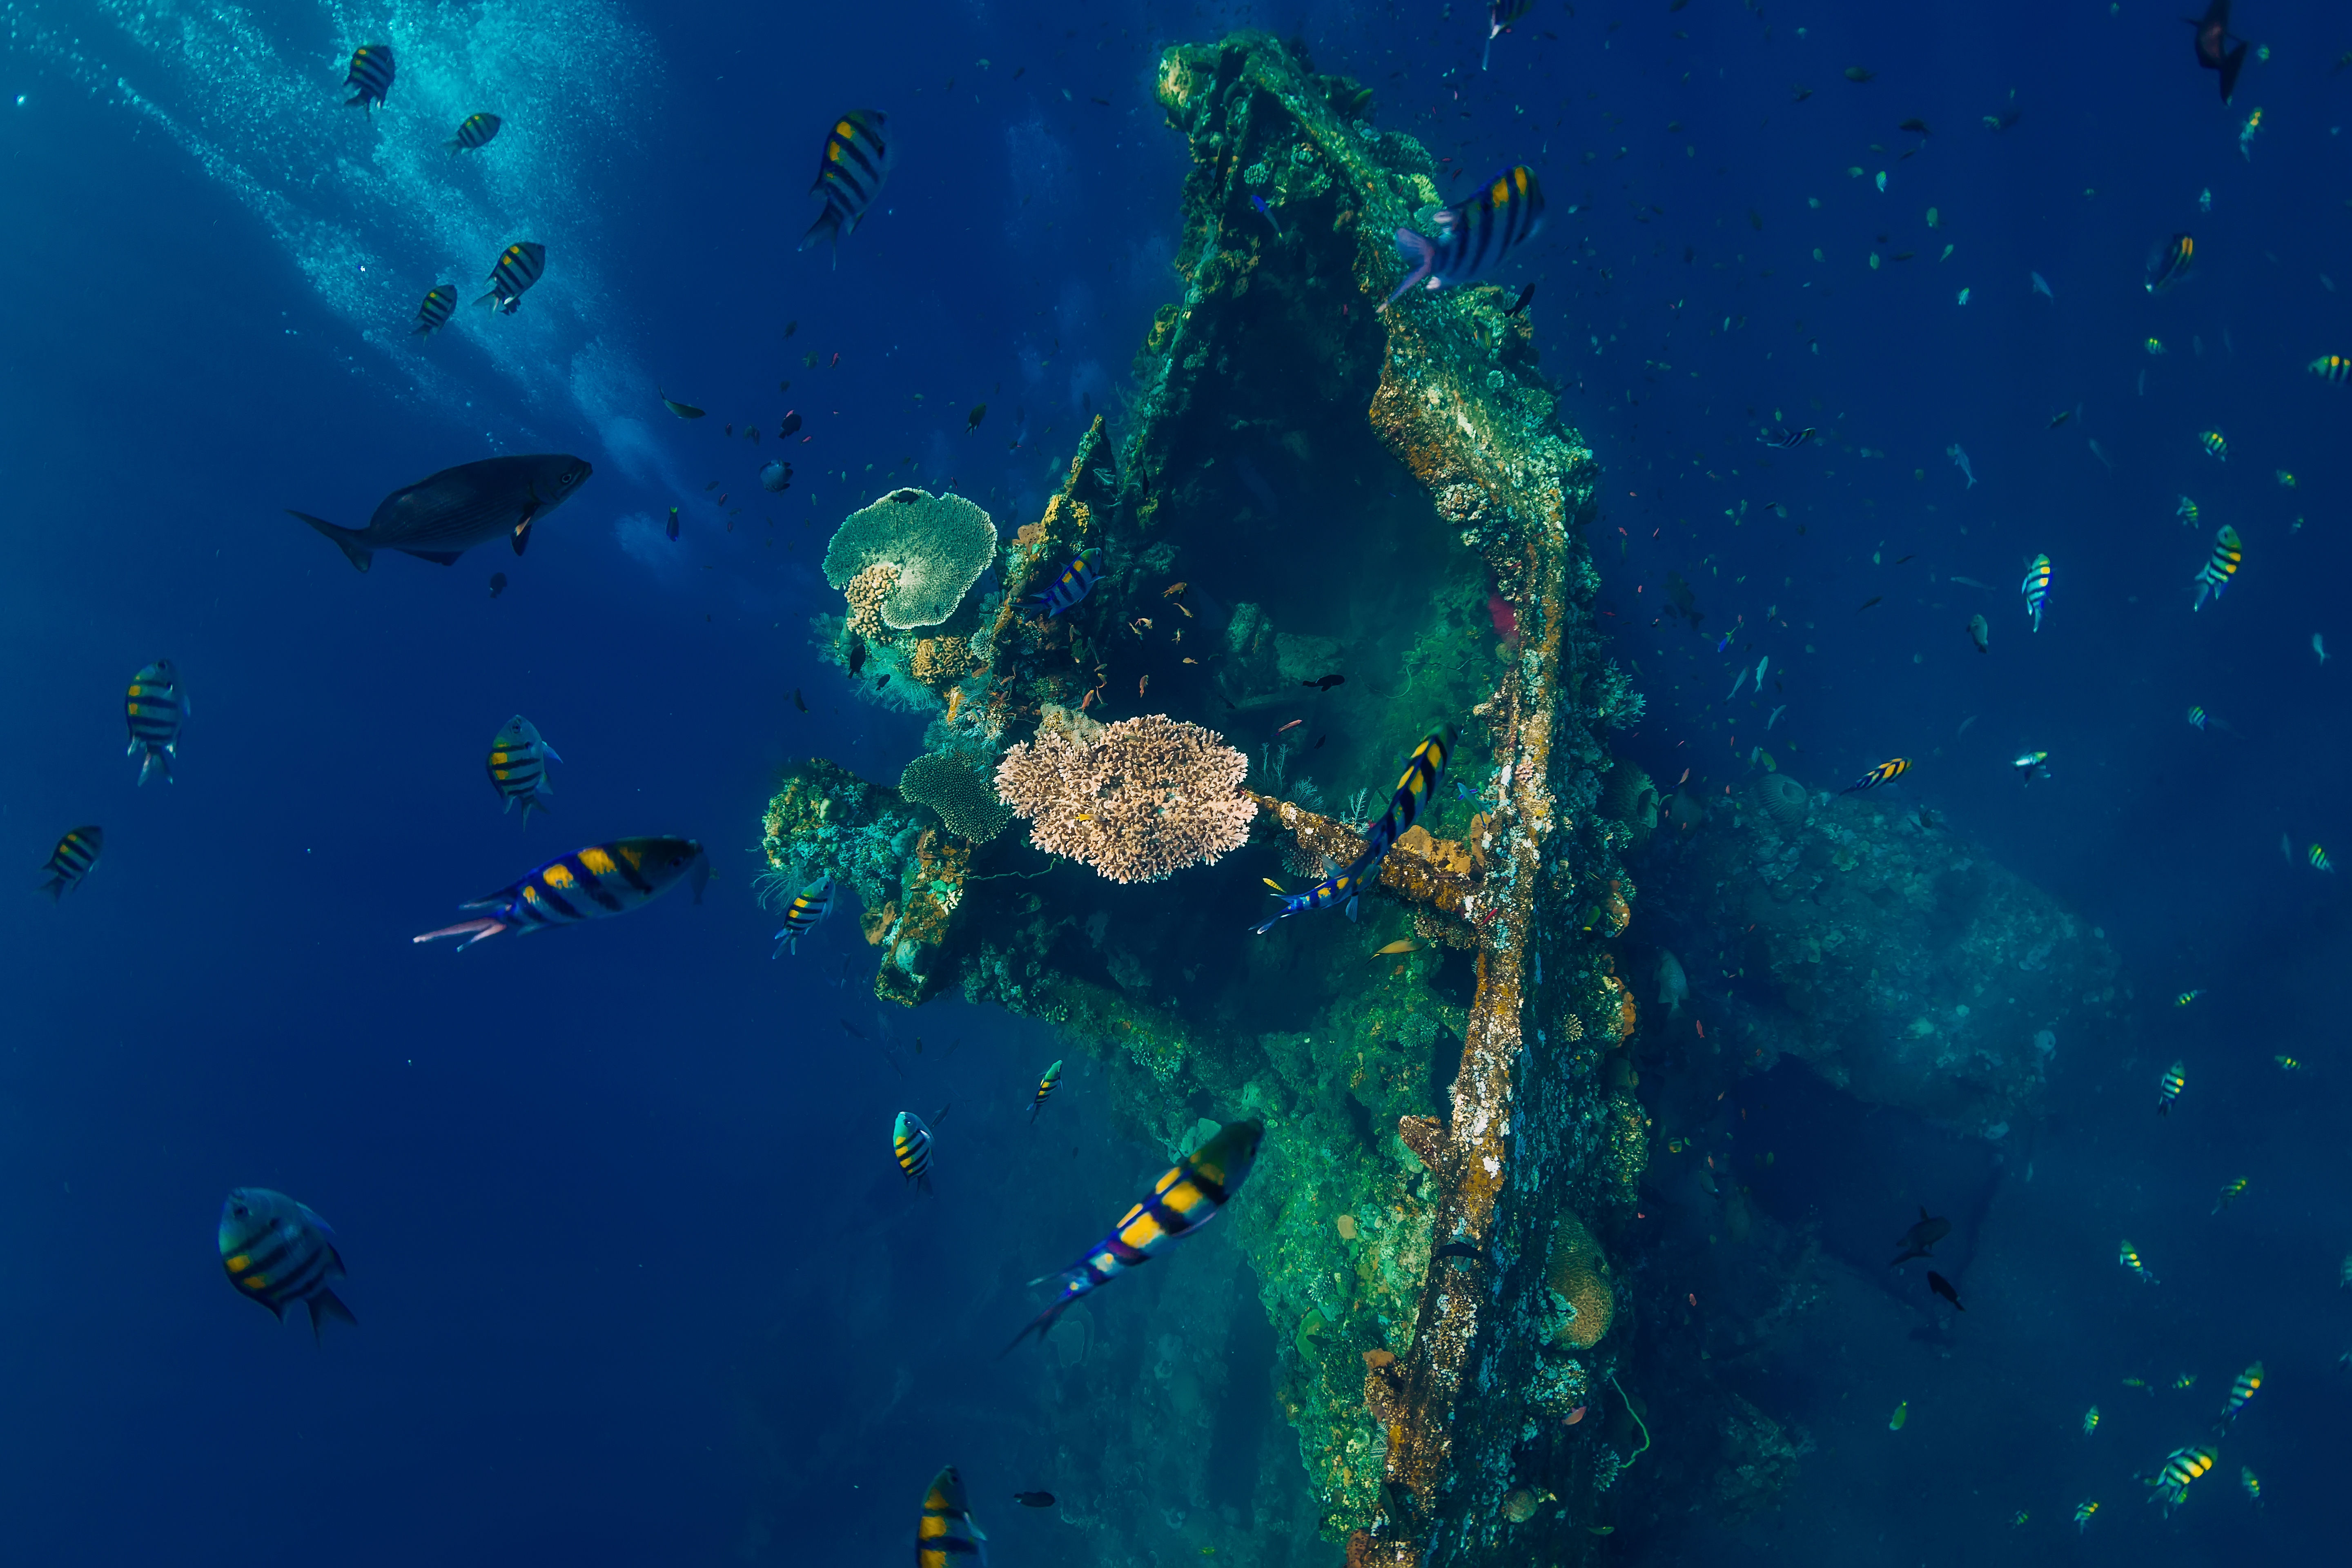 Underwater photo of the USAT Liberty wreck in deep blue water, corals, fish and divers bubbles, lying off the coast of Tulamben in Bali.